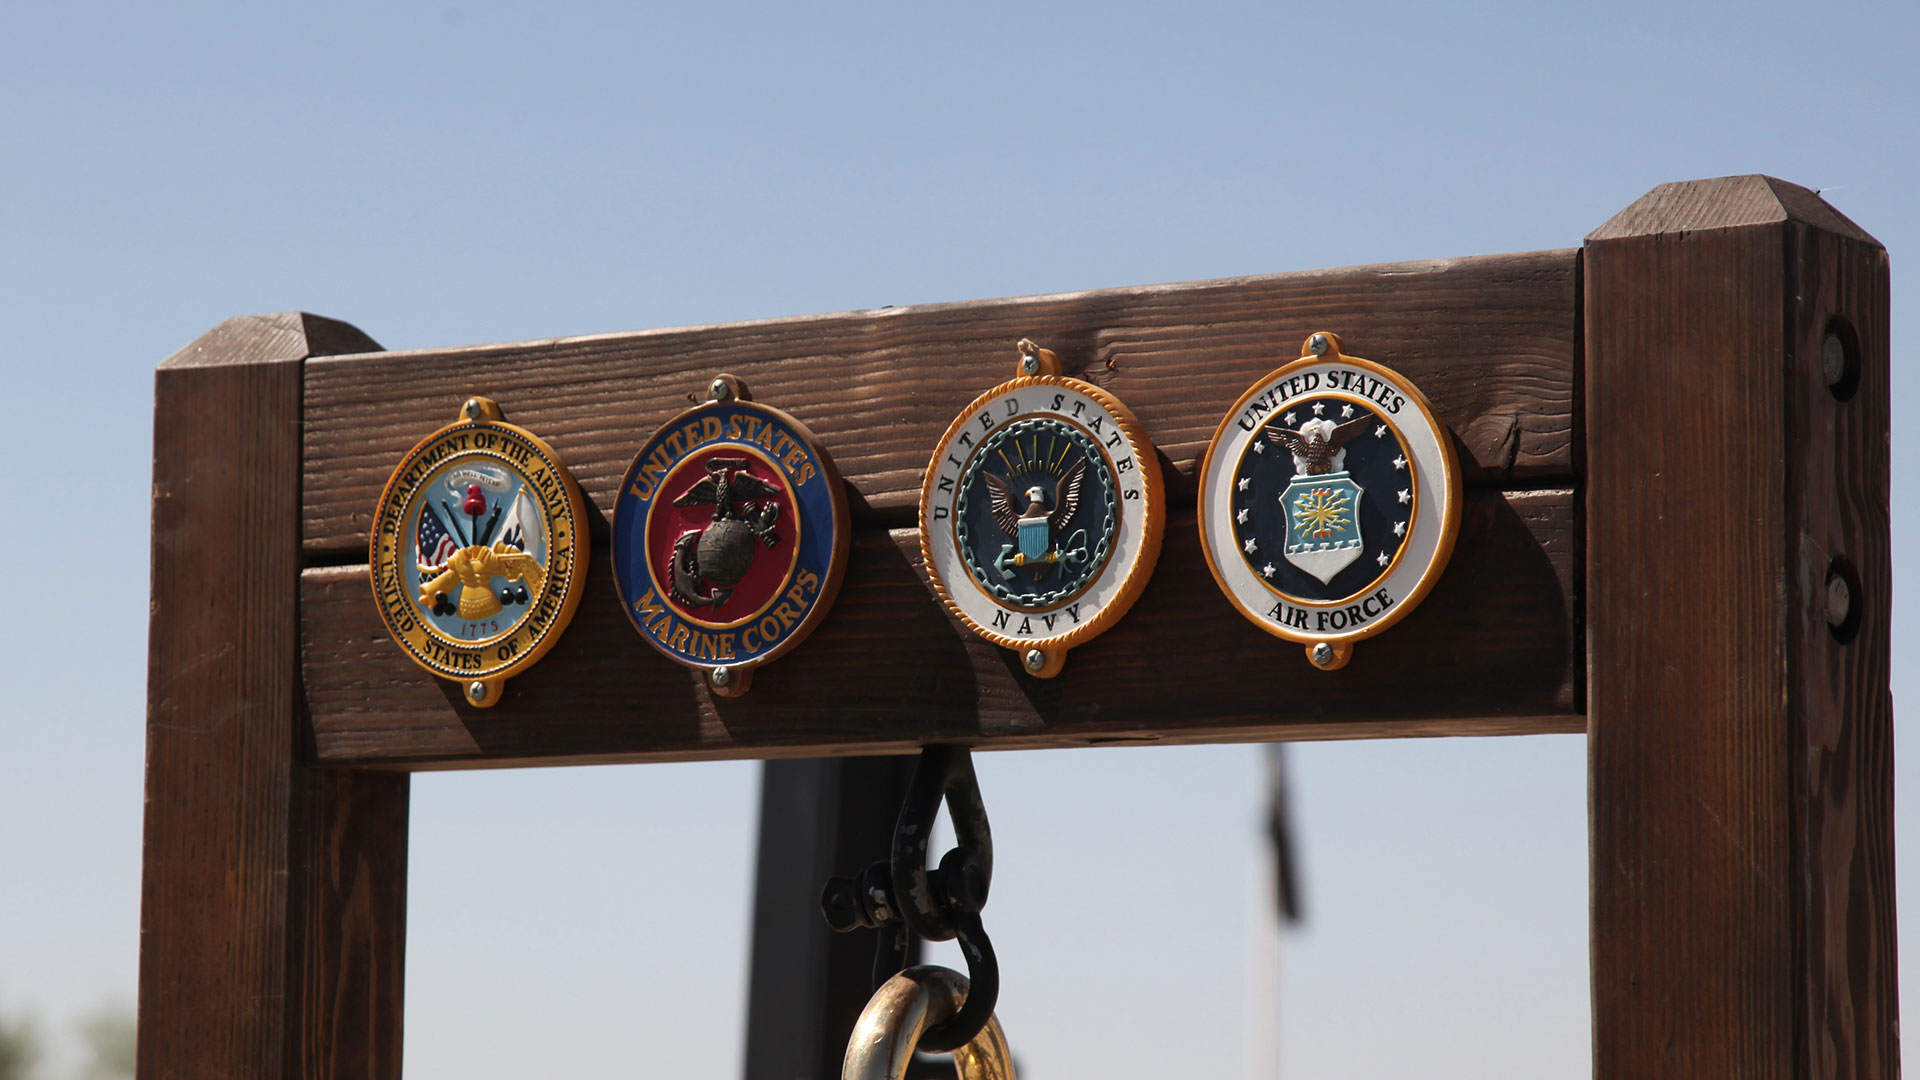 Seals representing each branch of the armed services